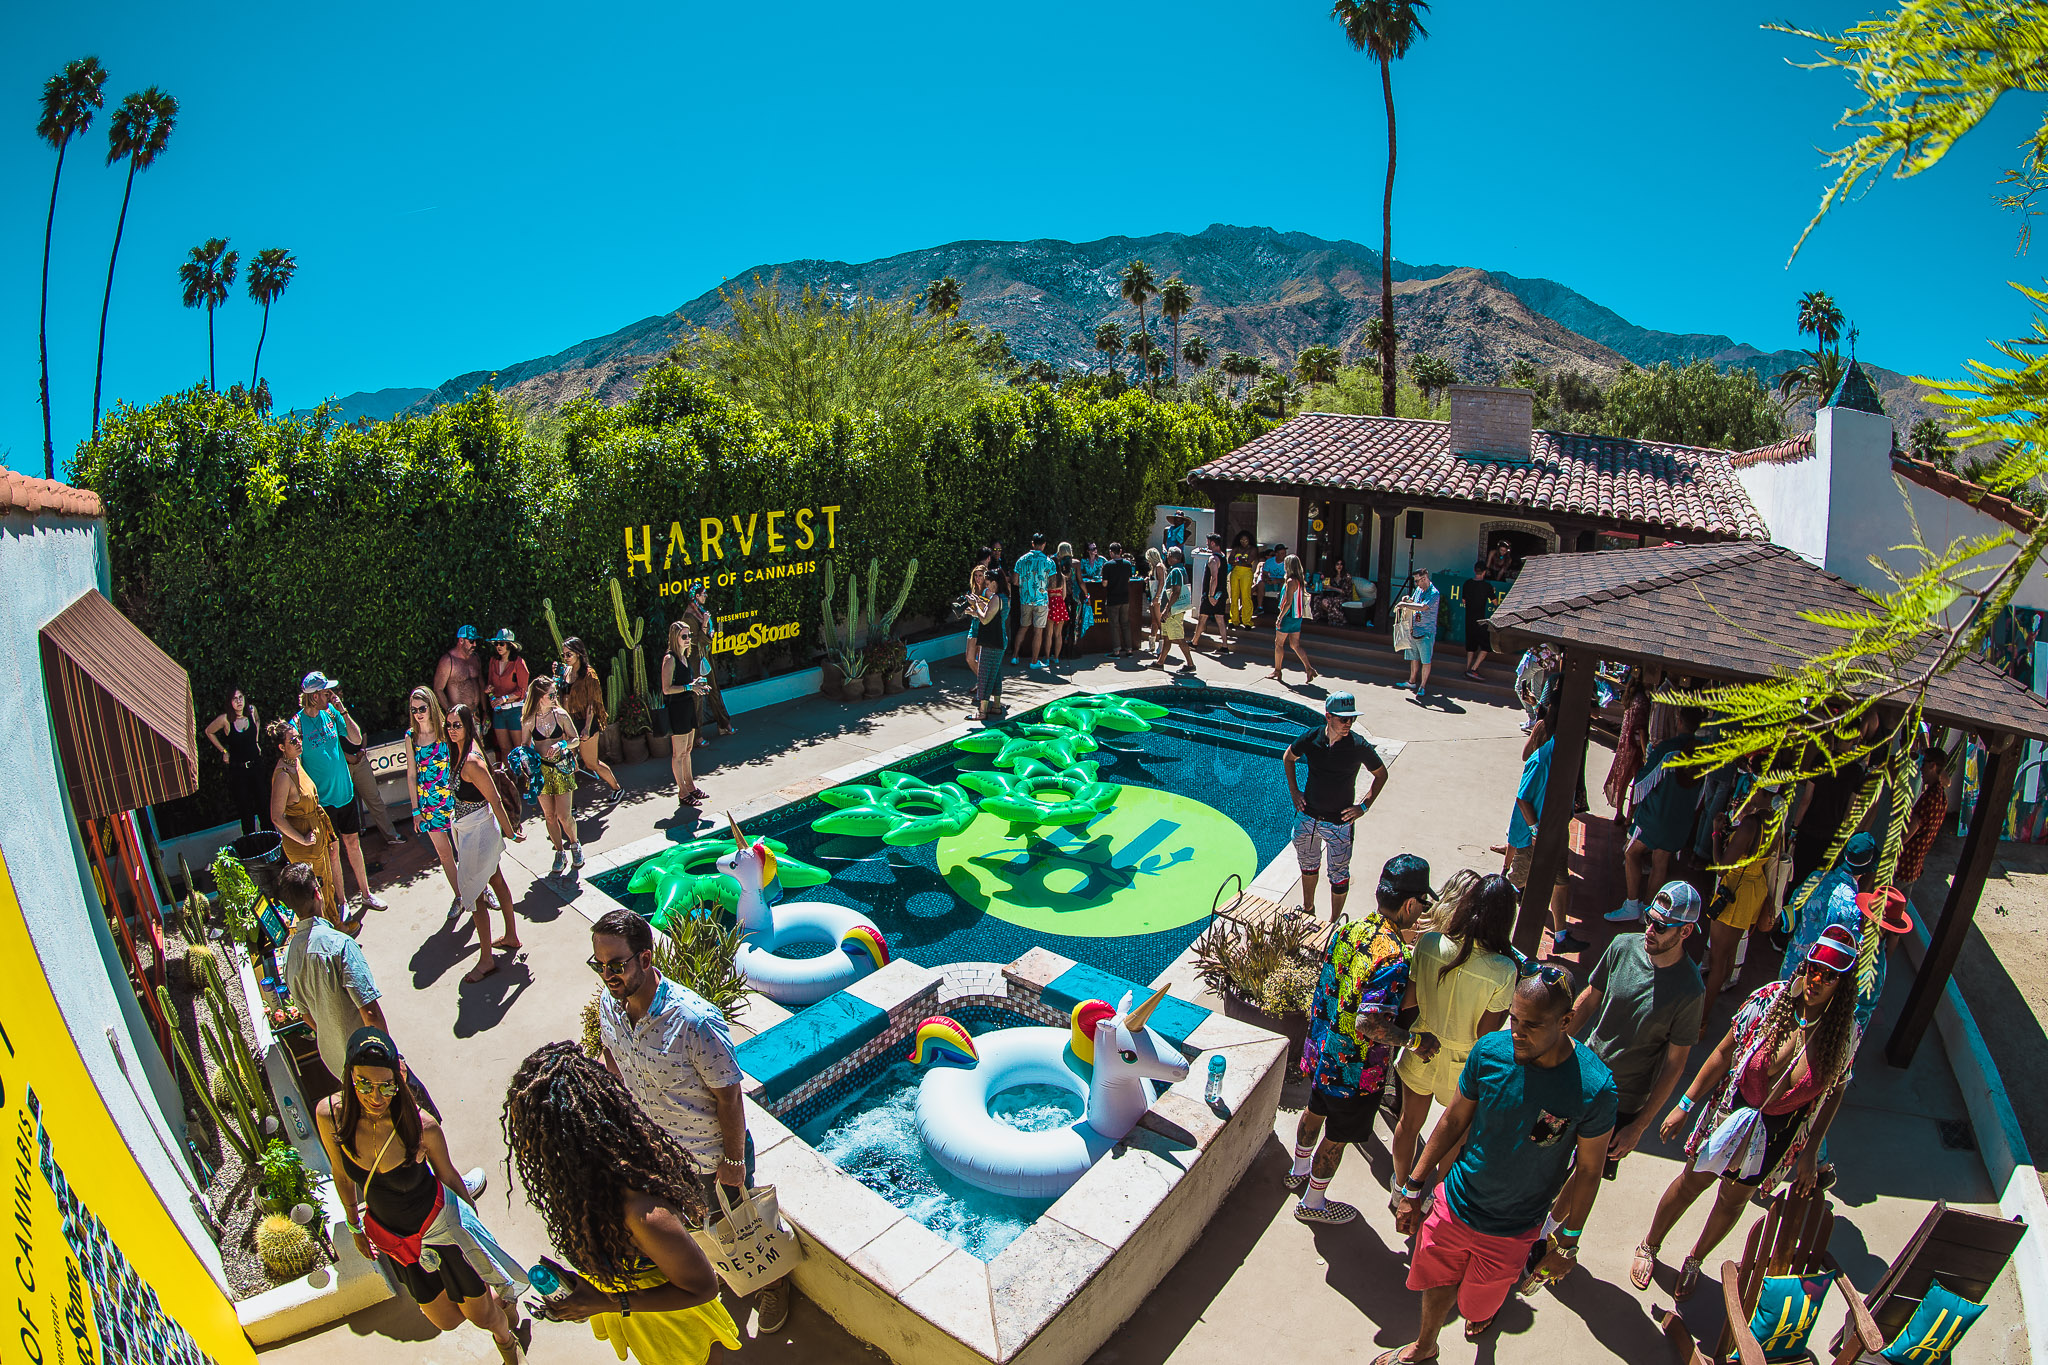 Rolling Stone Brings Harvest House of Cannabis to the Desert